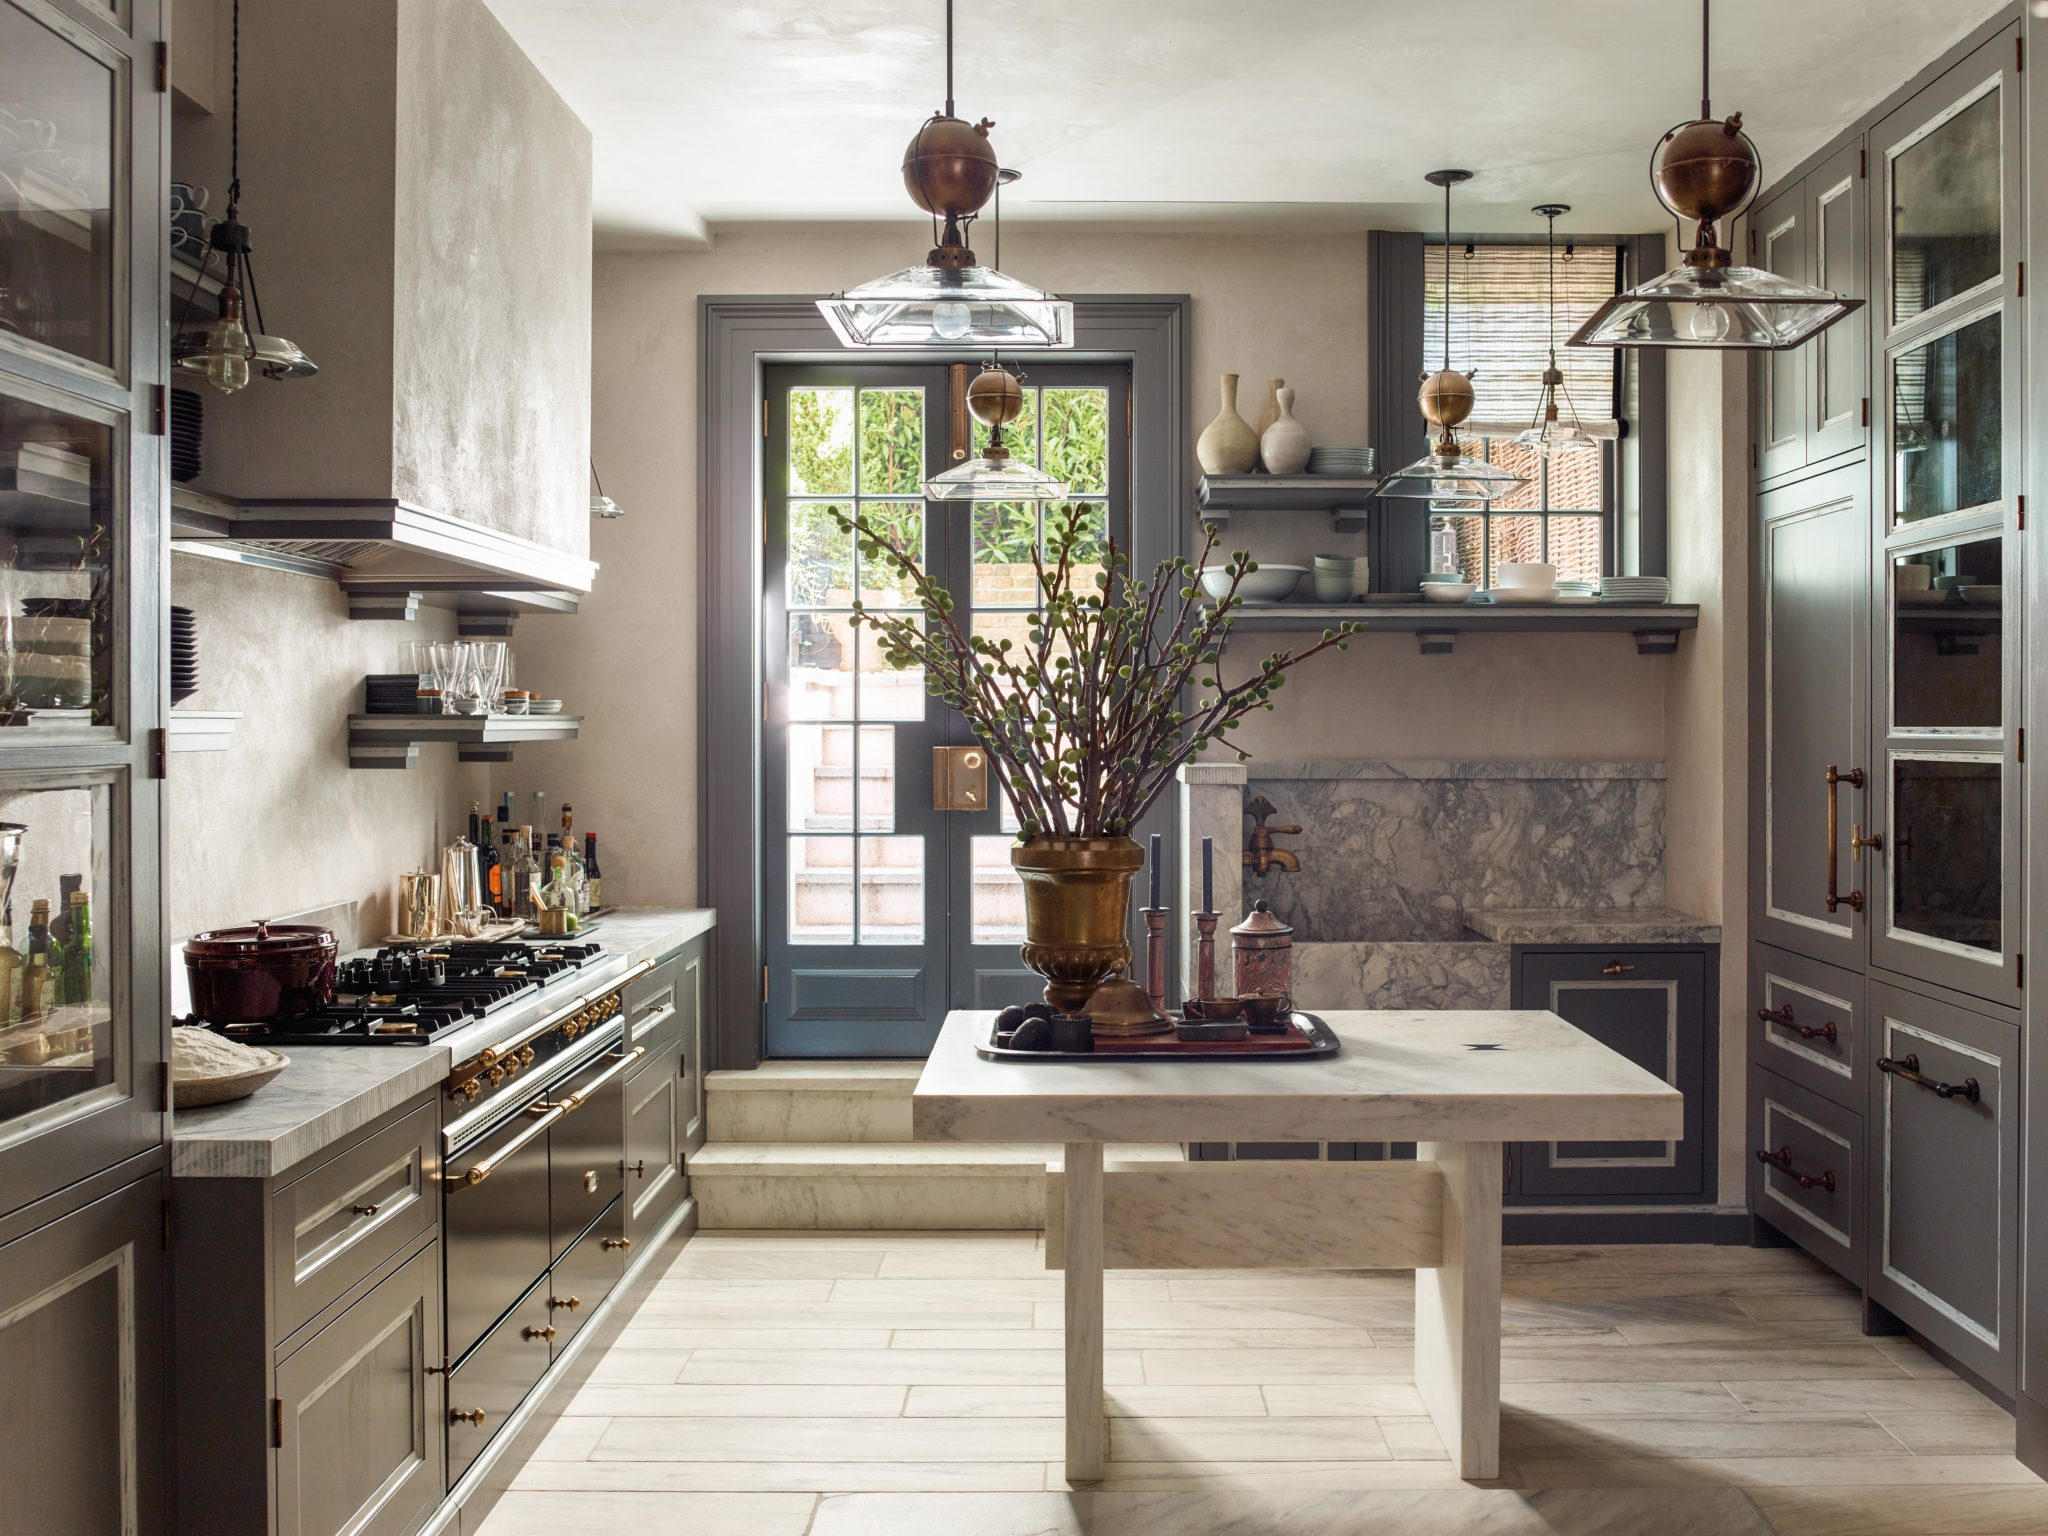 The renovation of the Morton Street townhouse involved lowering the kitchen floor by three feet to gain ceiling height and access to the garden; the custom cabinetry and shelves display hotel silver and everyday dishes.